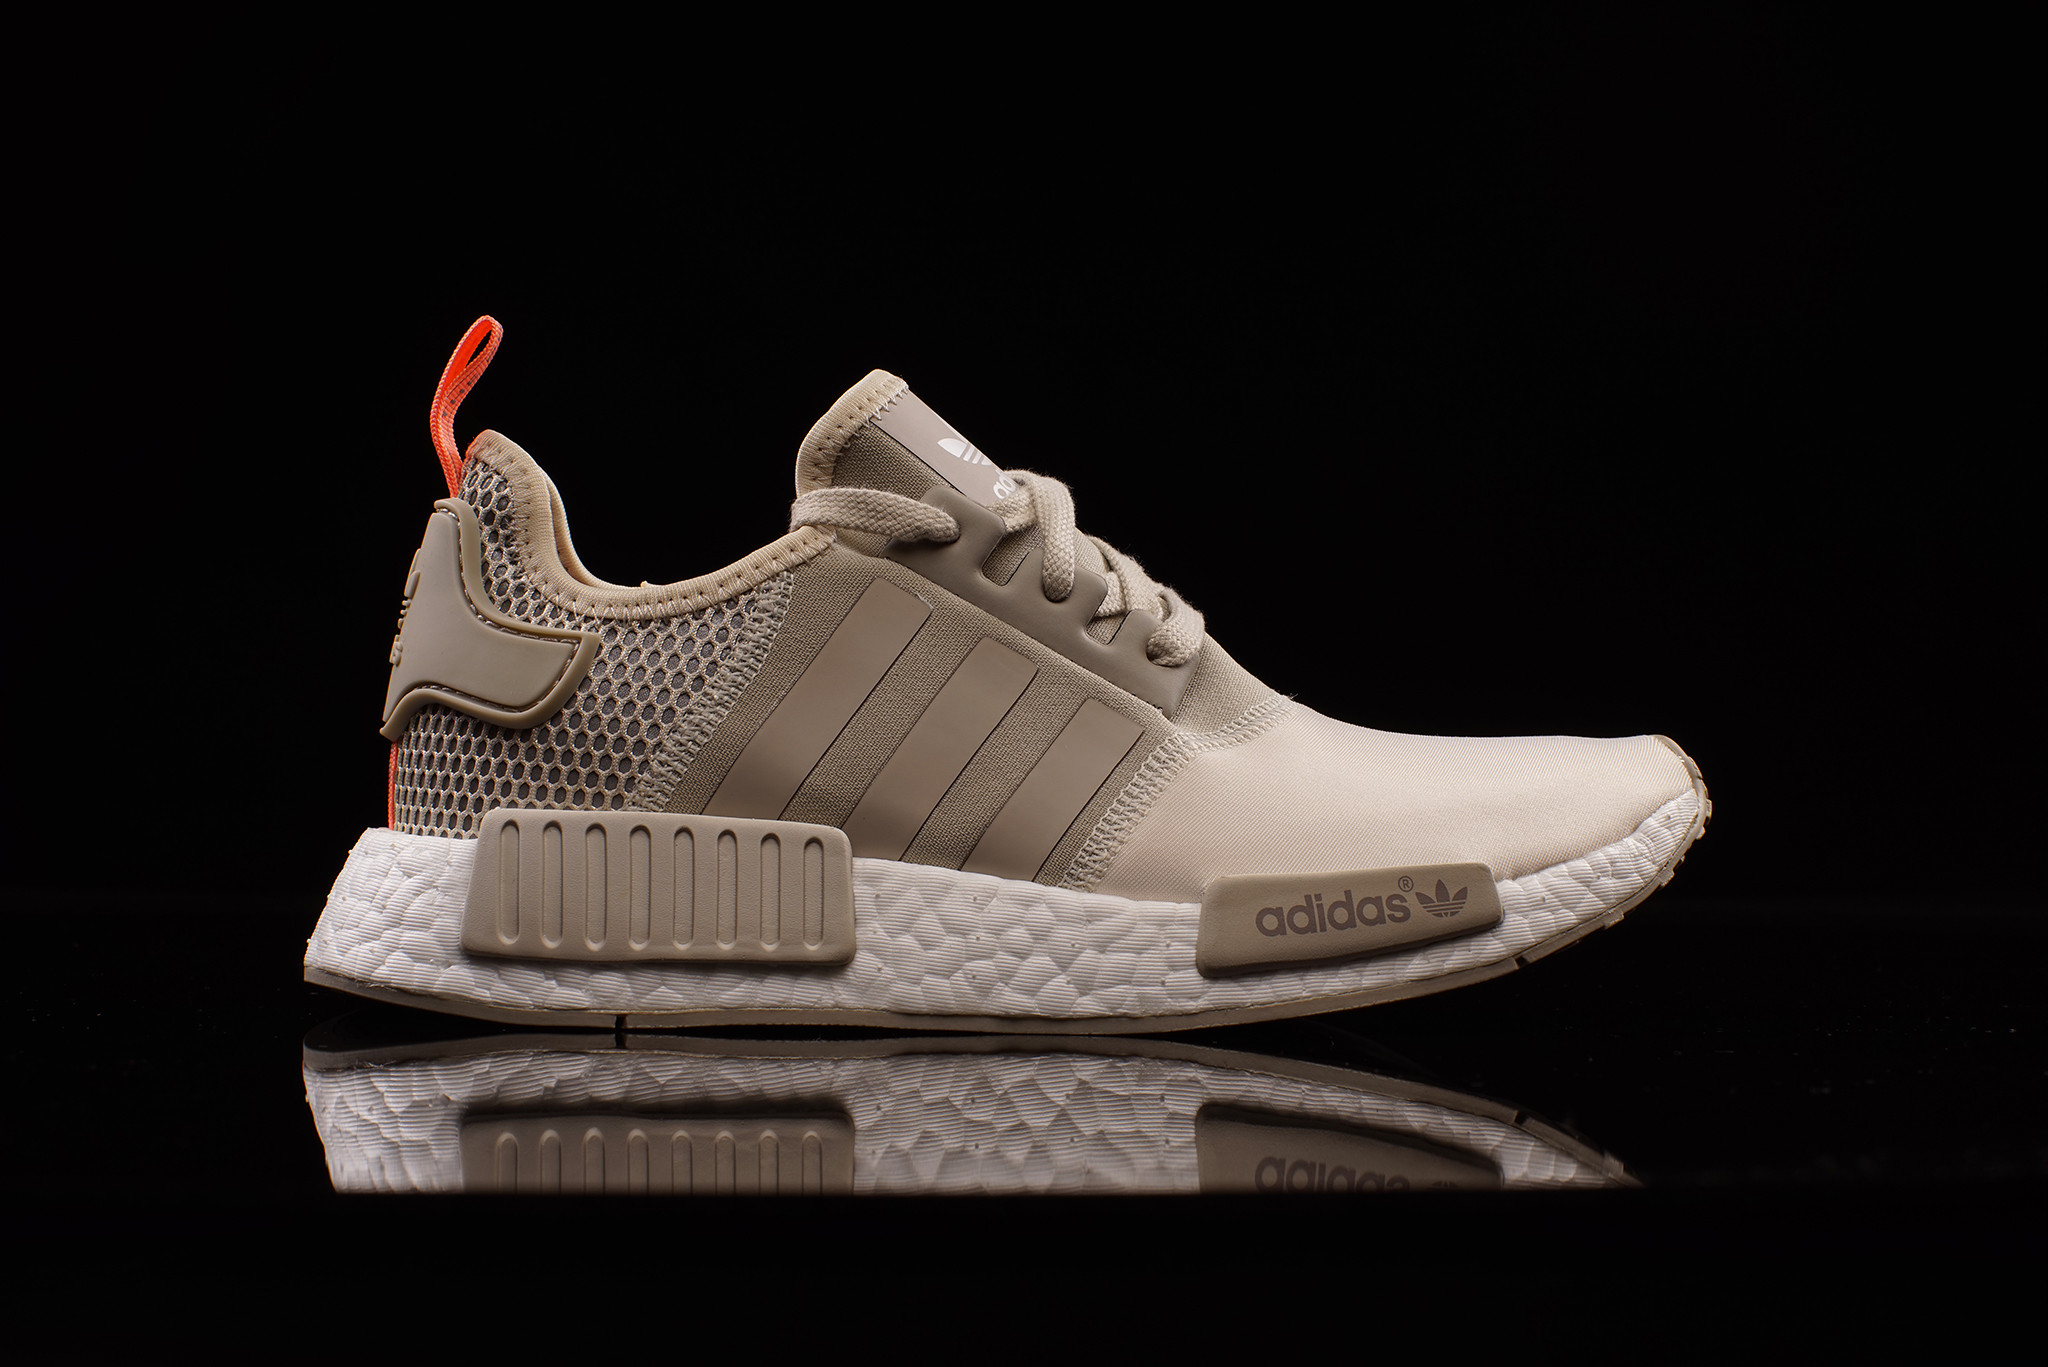 adidas nmd femme light brown